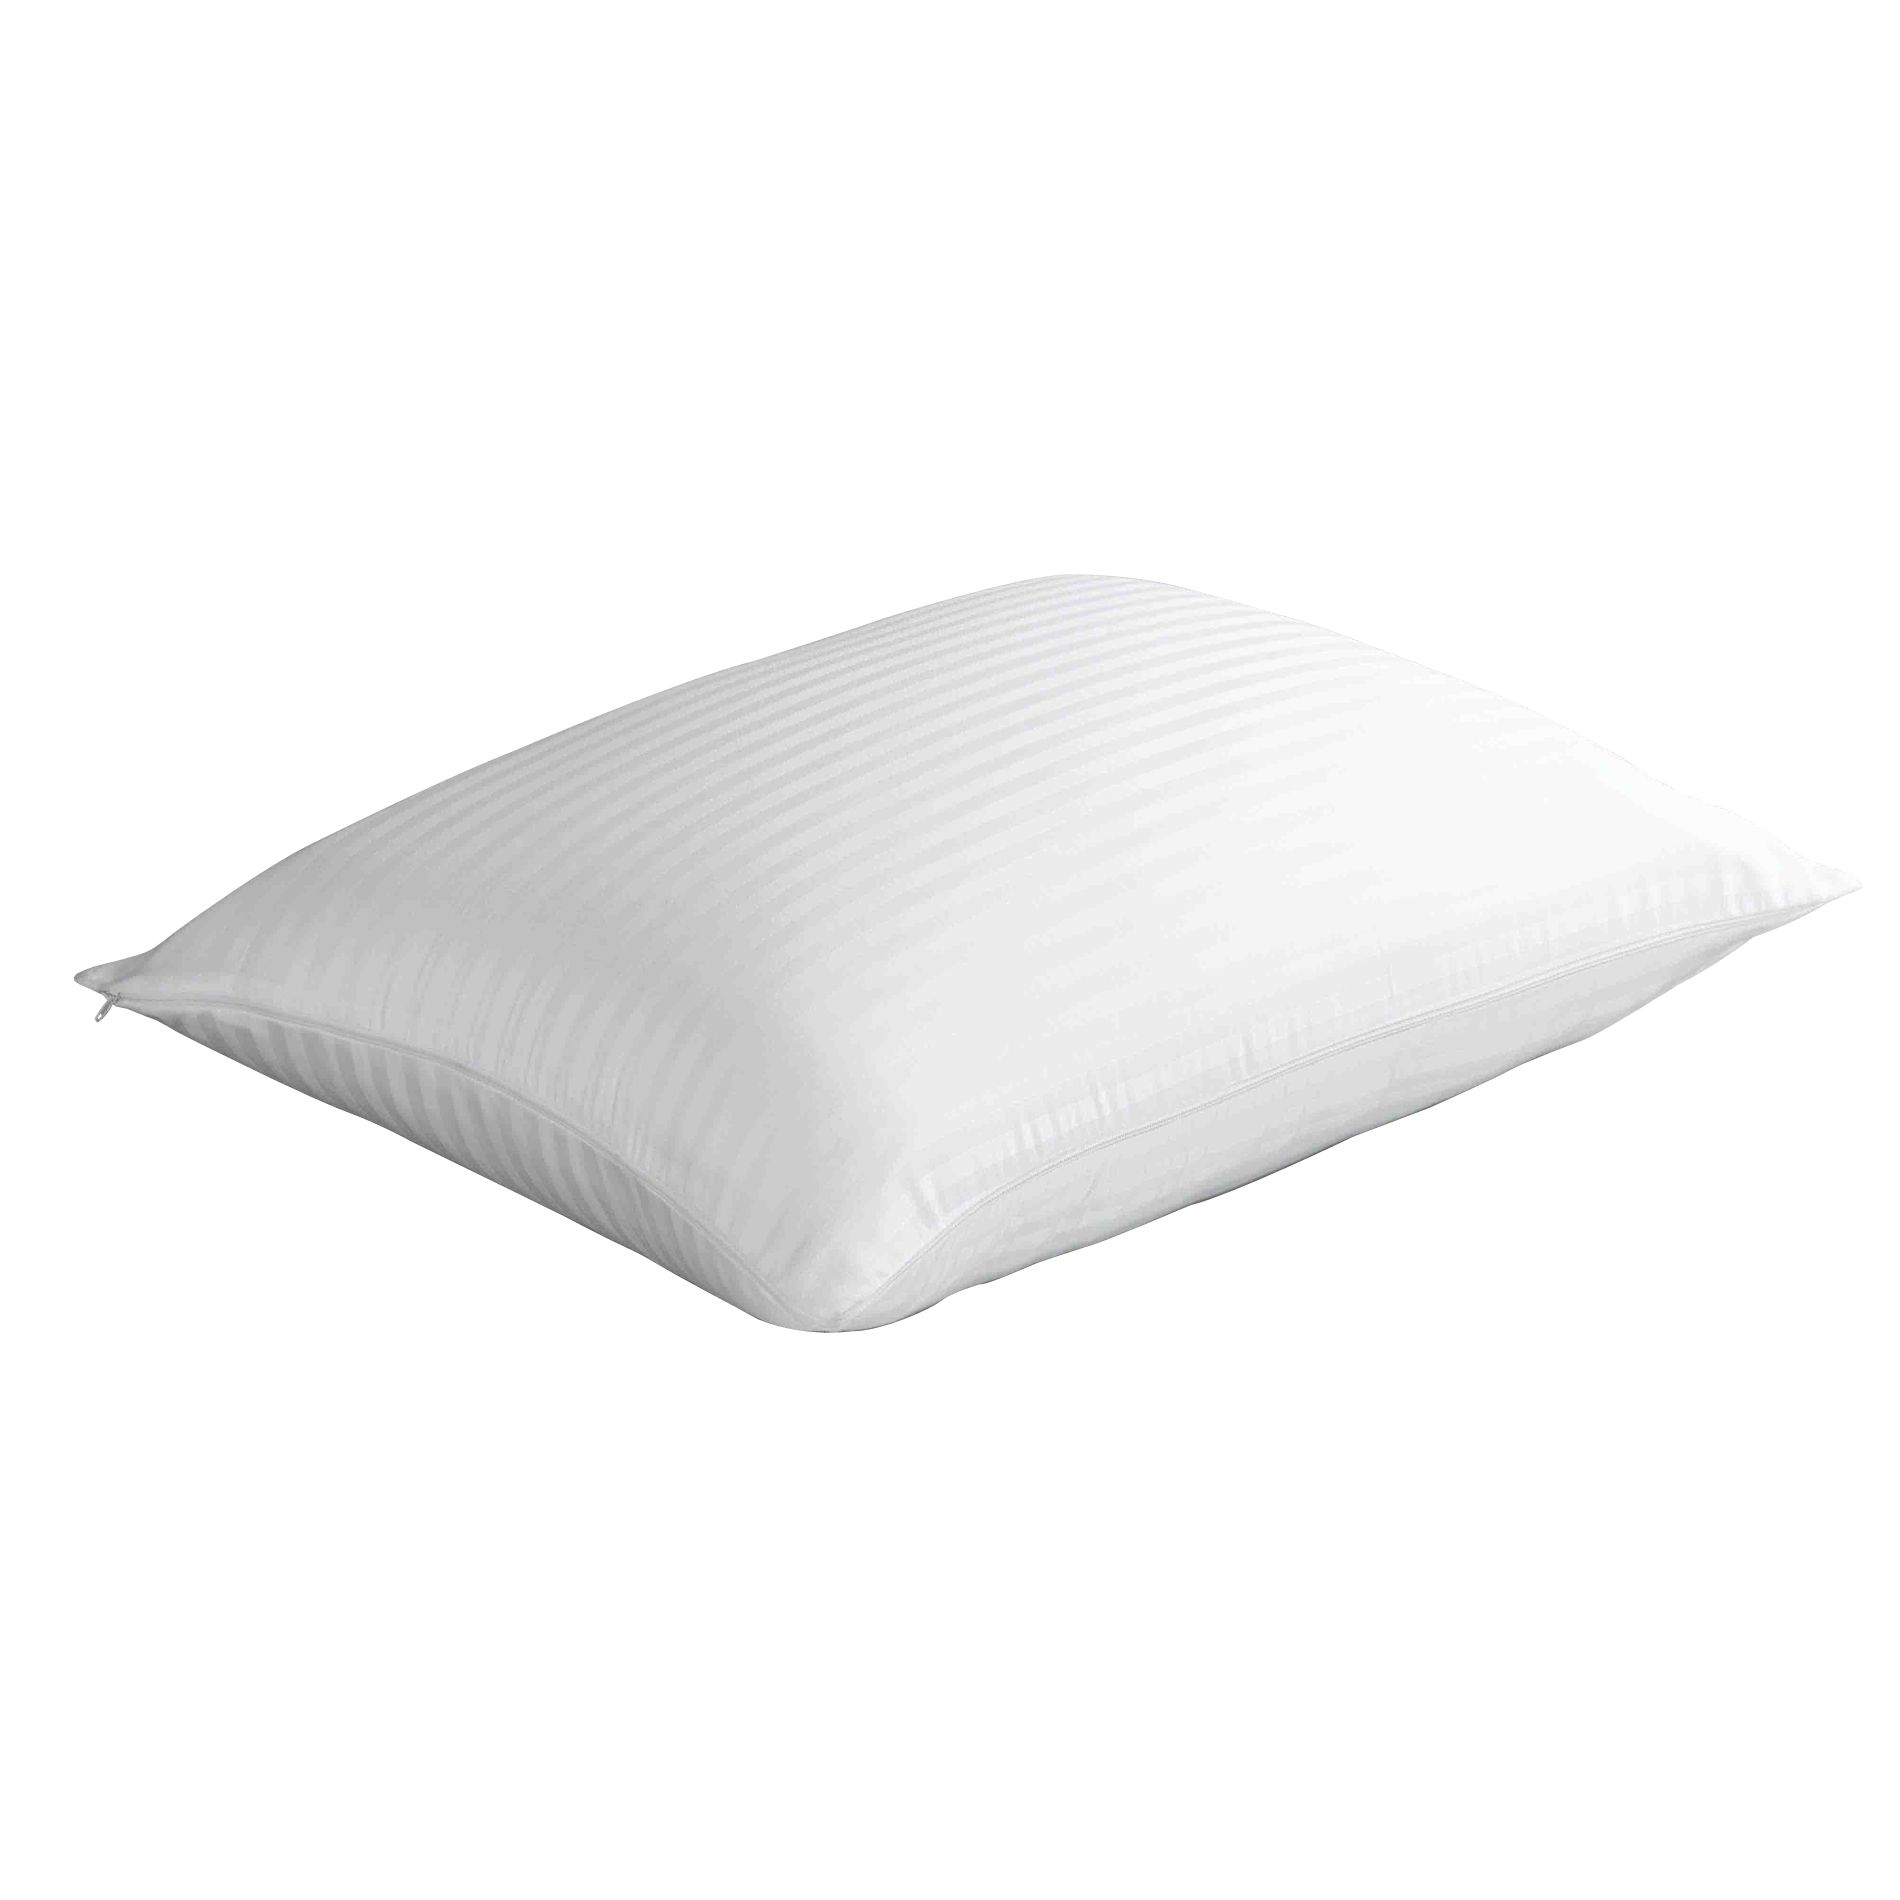 2-In-1 Memory Foam Pillow